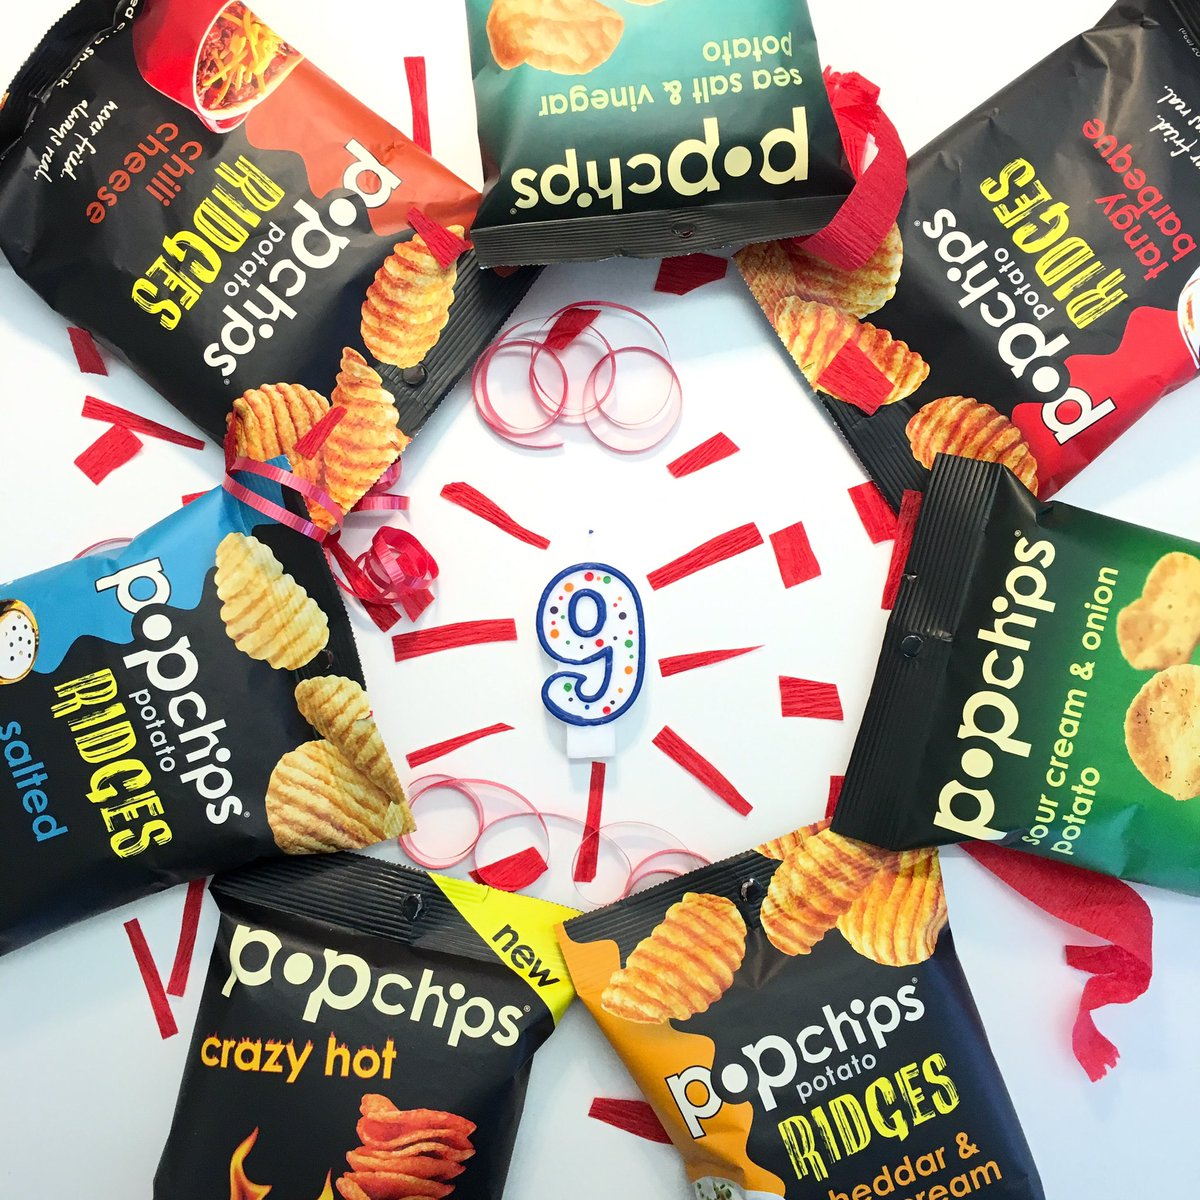 it's our 9th bday & to celebrate we're giving 9 lucky snackers a month of #popchips. just follow & RT to enter